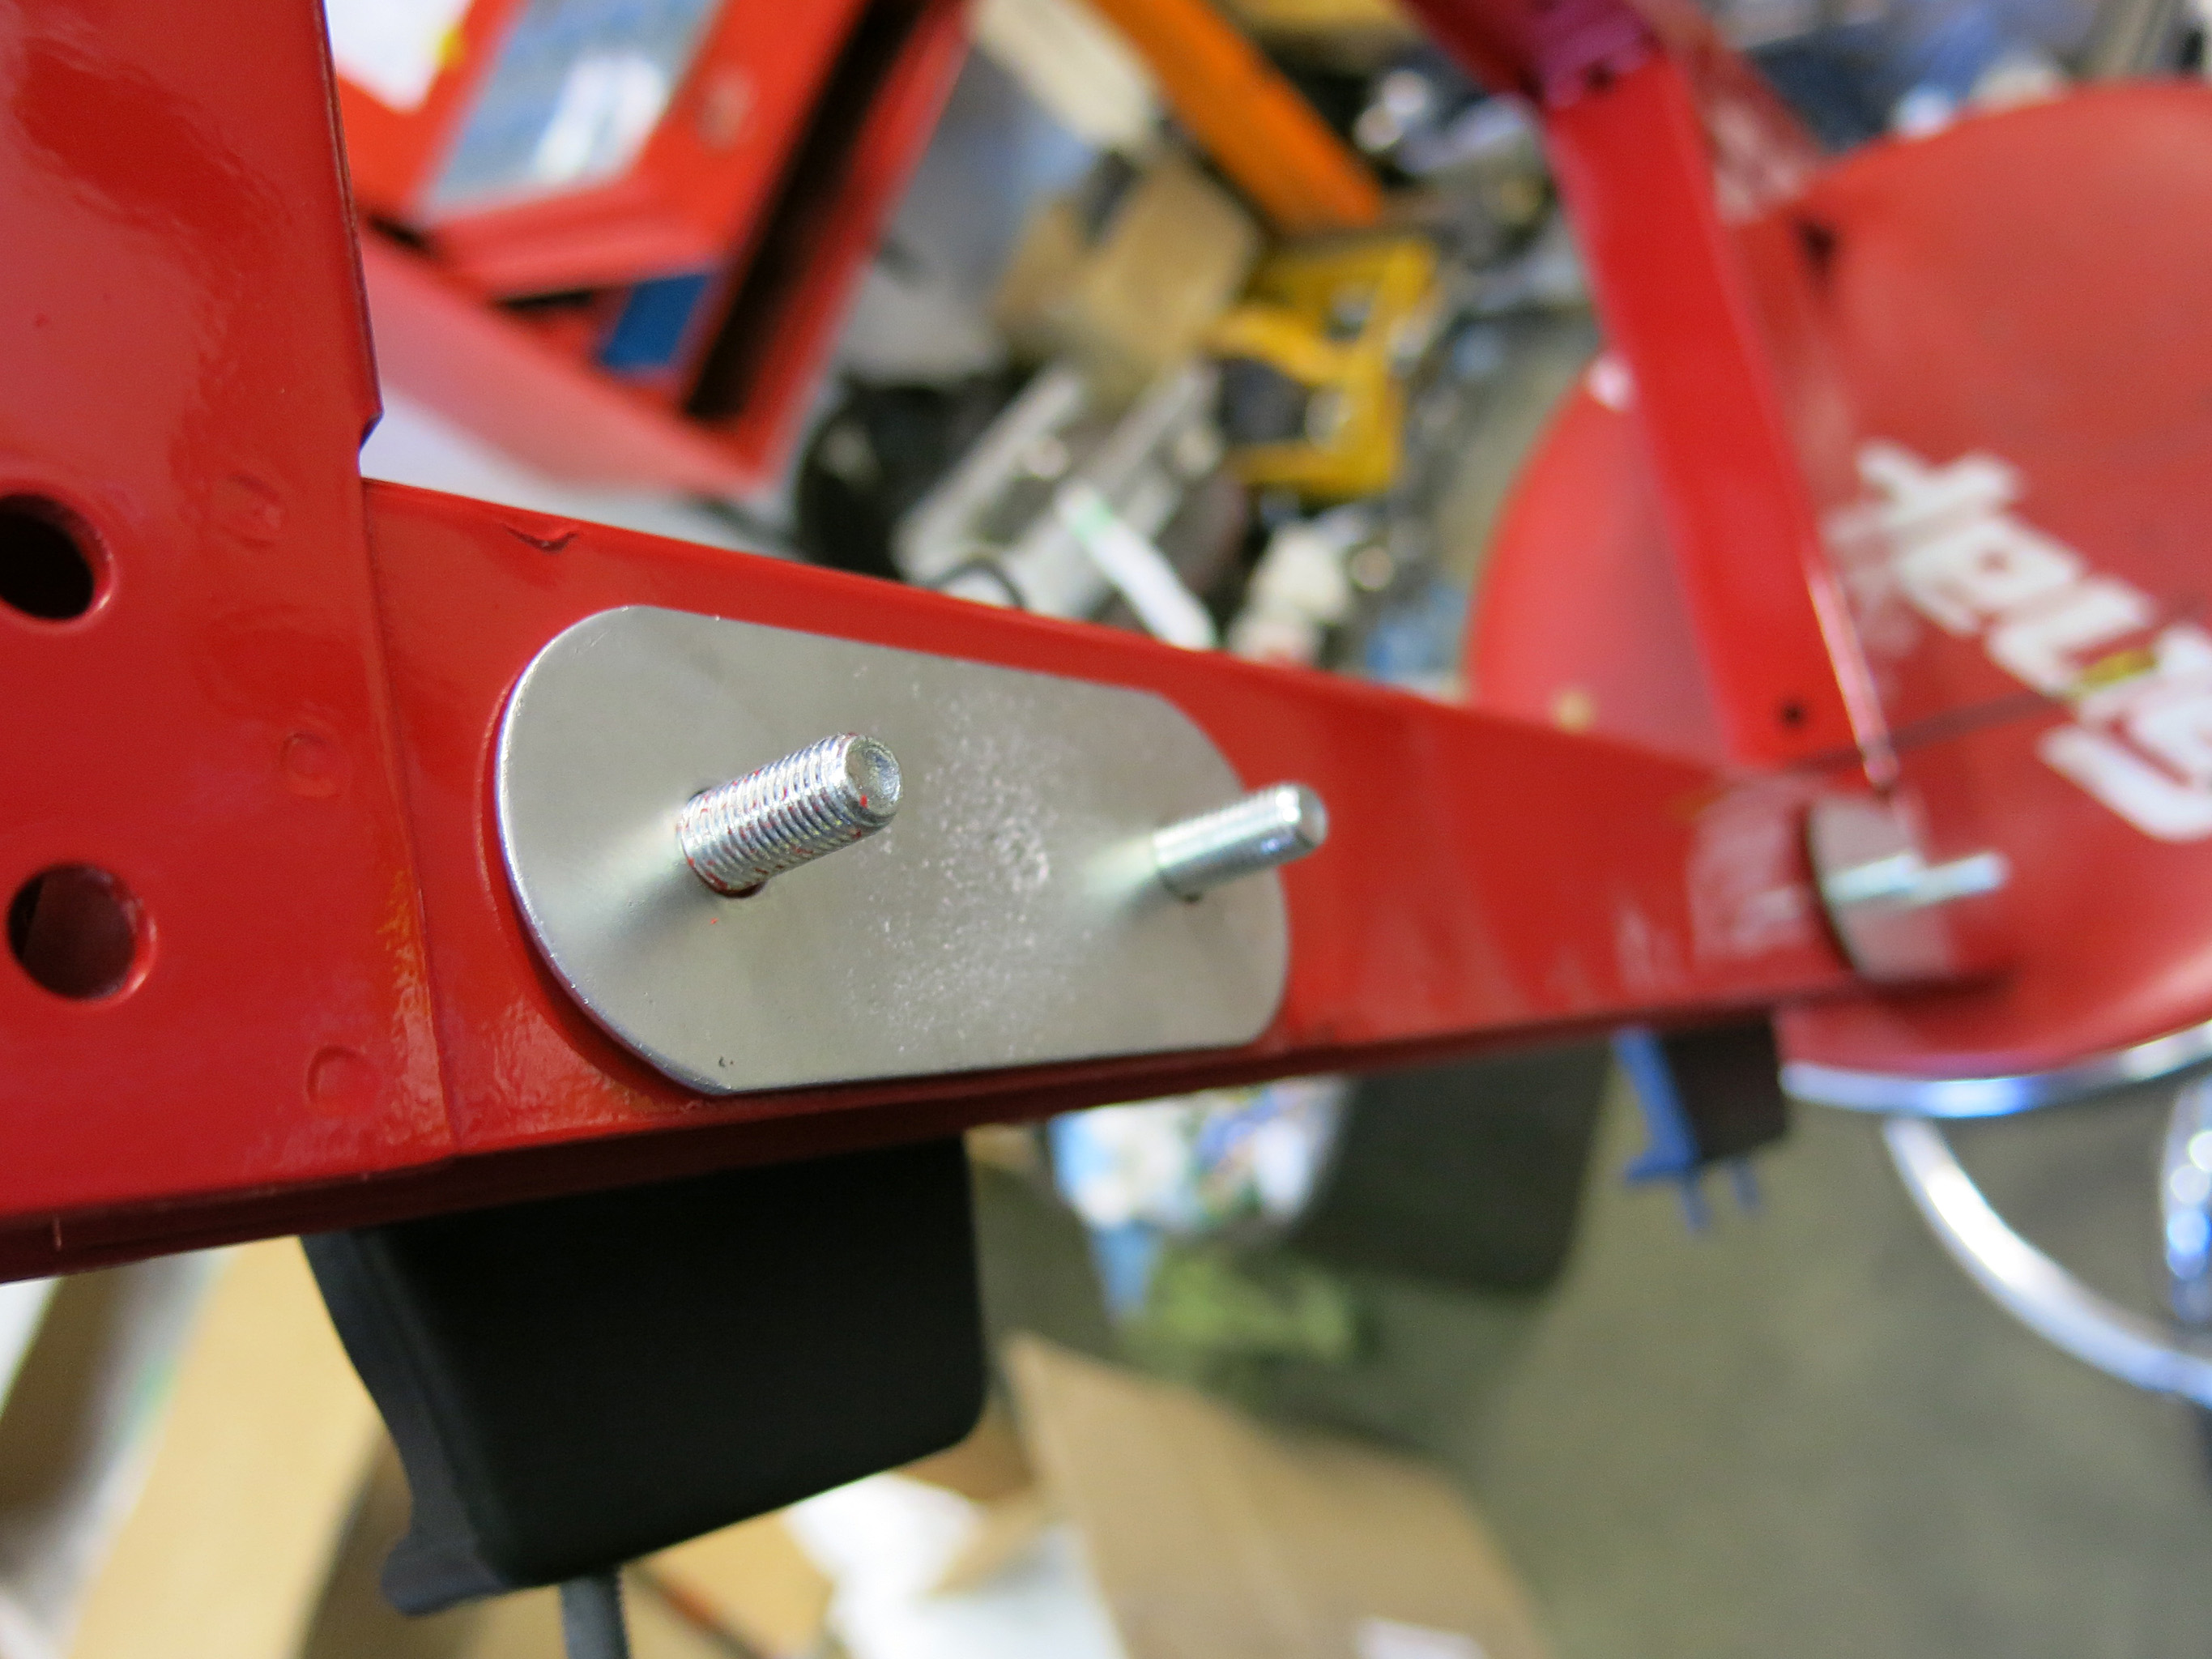 STEP 5 - Install the E-Type front cross member aka the 'Picture Frame' with the lower 4  5/16x2¼bolts.  These sheet metal spacers sit between the picture frame and engine subframes. If your car is a 4.2 the horn brackets will also go through these four bolts.